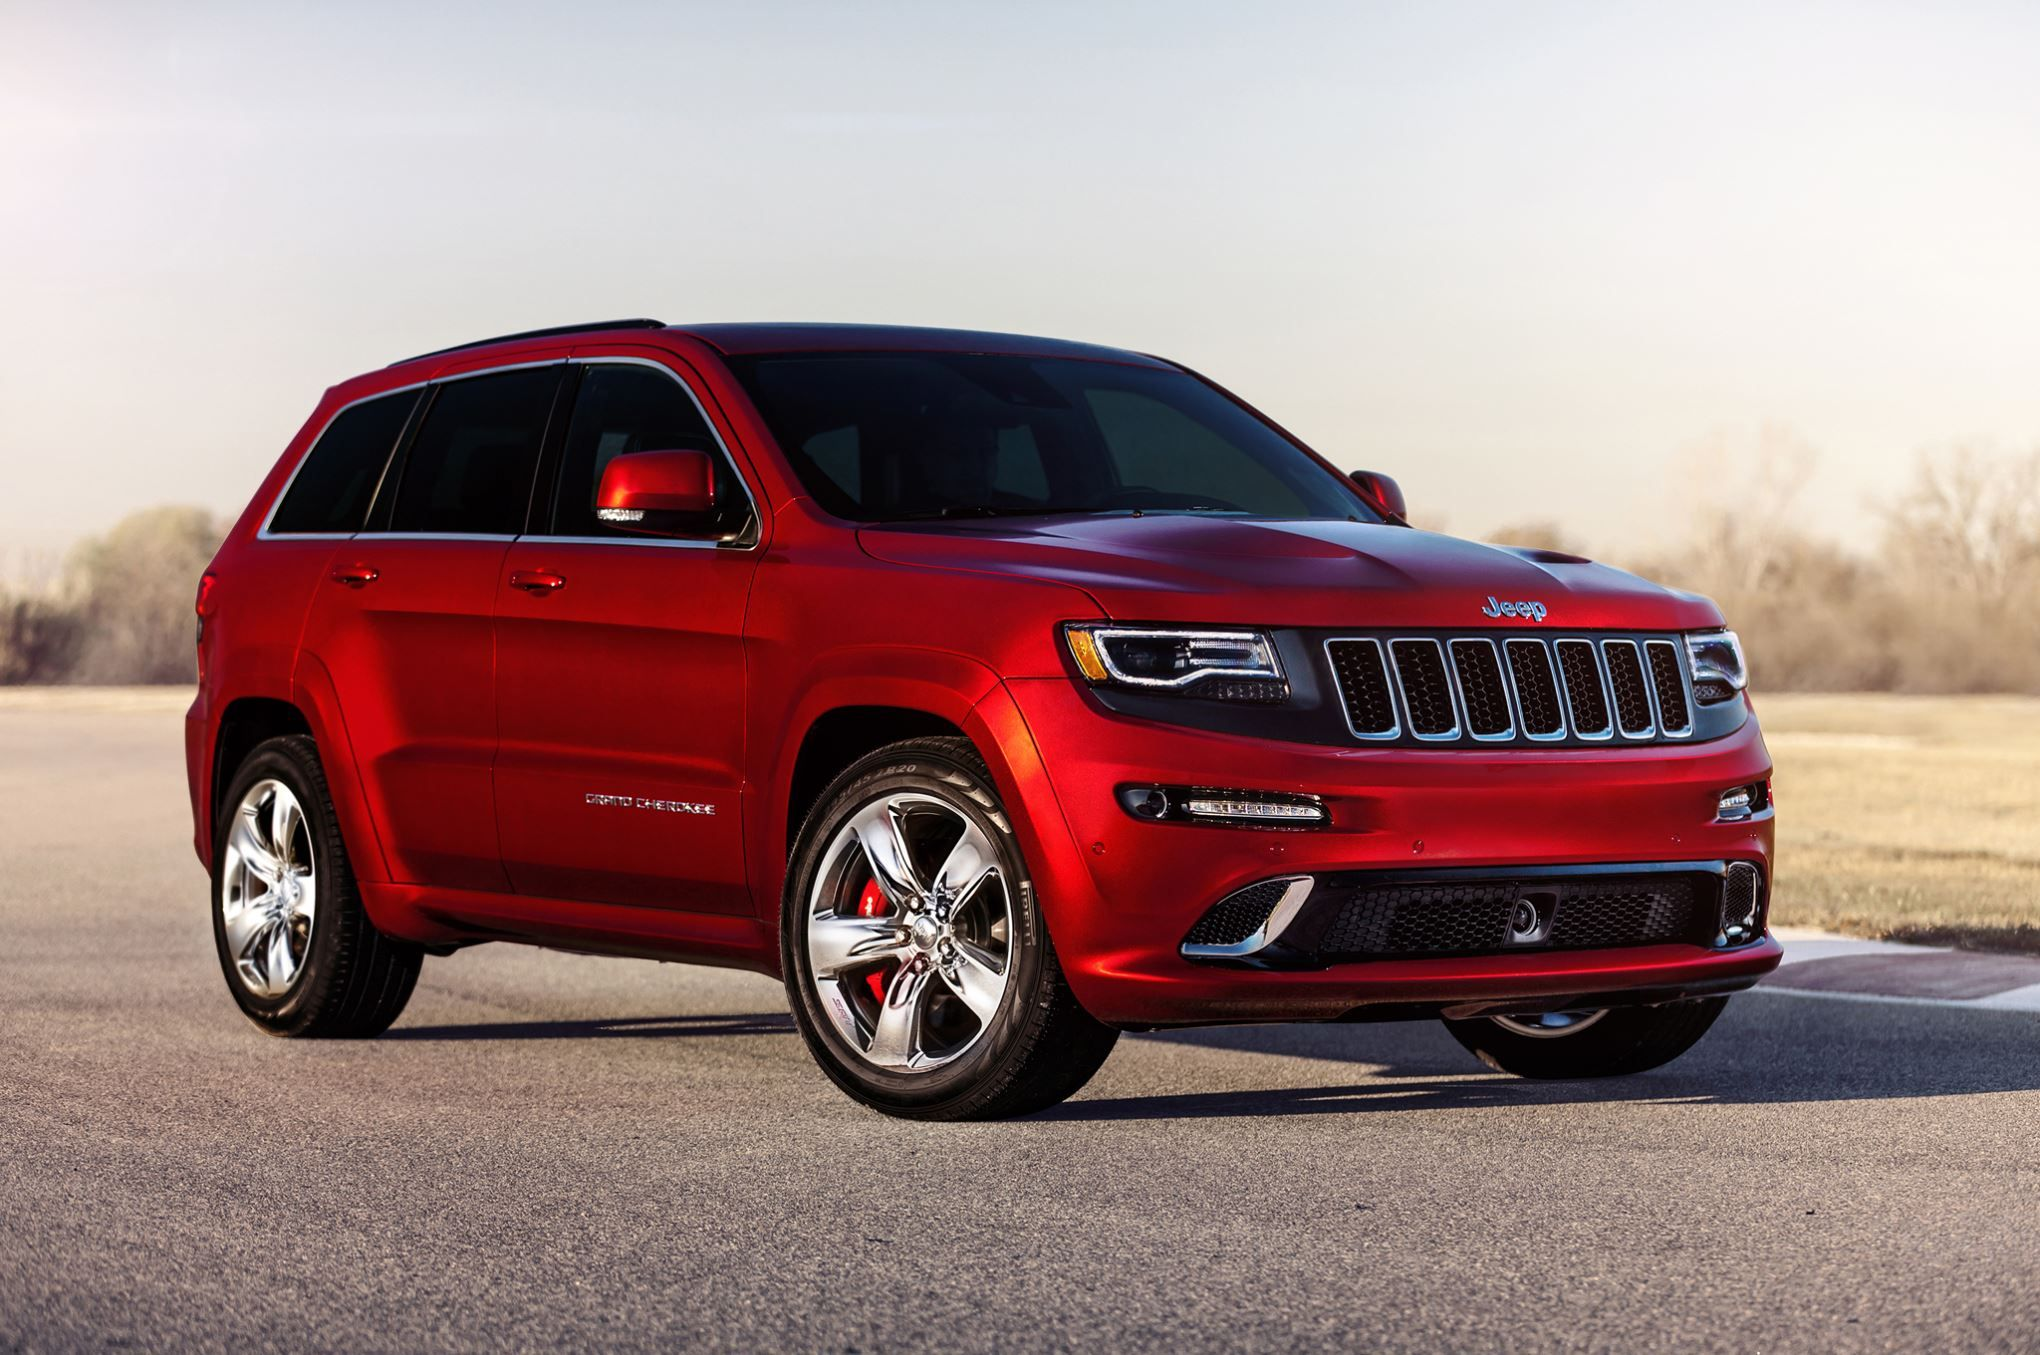 Jeep Grand Cherokee Base Price 30 590 65 390 Unchanged The